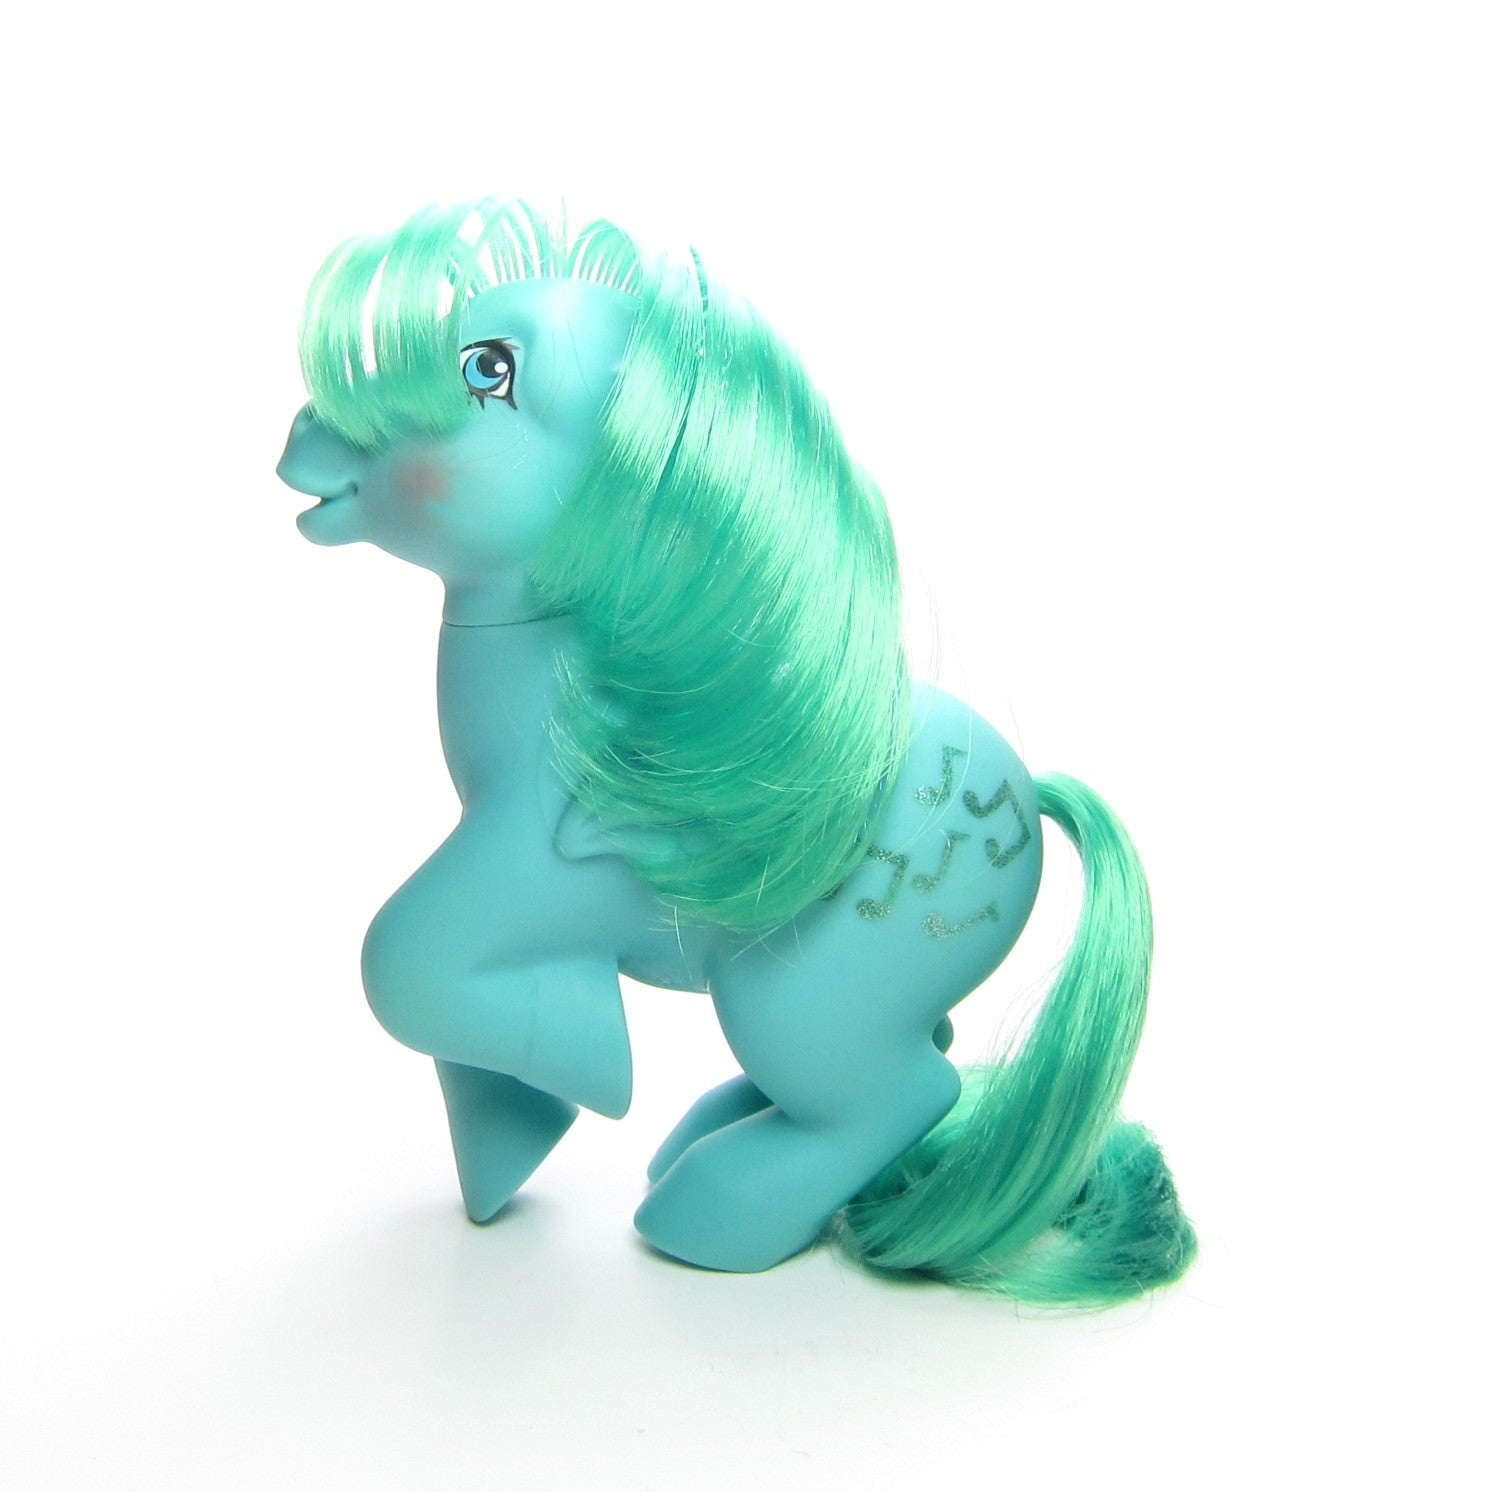 Medley My Little Pony pegasus